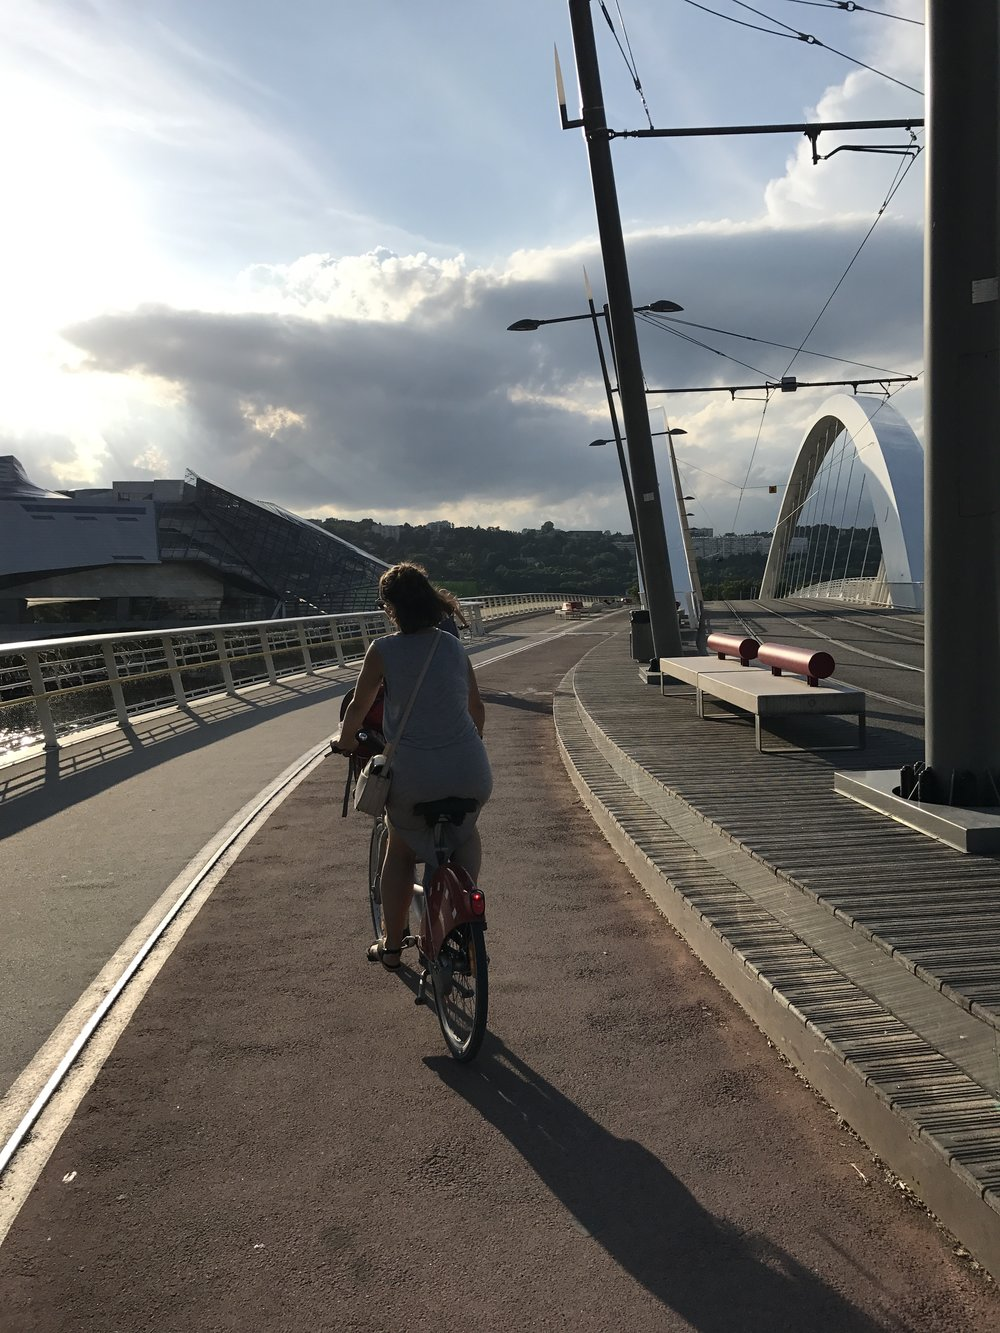 More than 650 km of safe cycle lanes, bridges and connections.